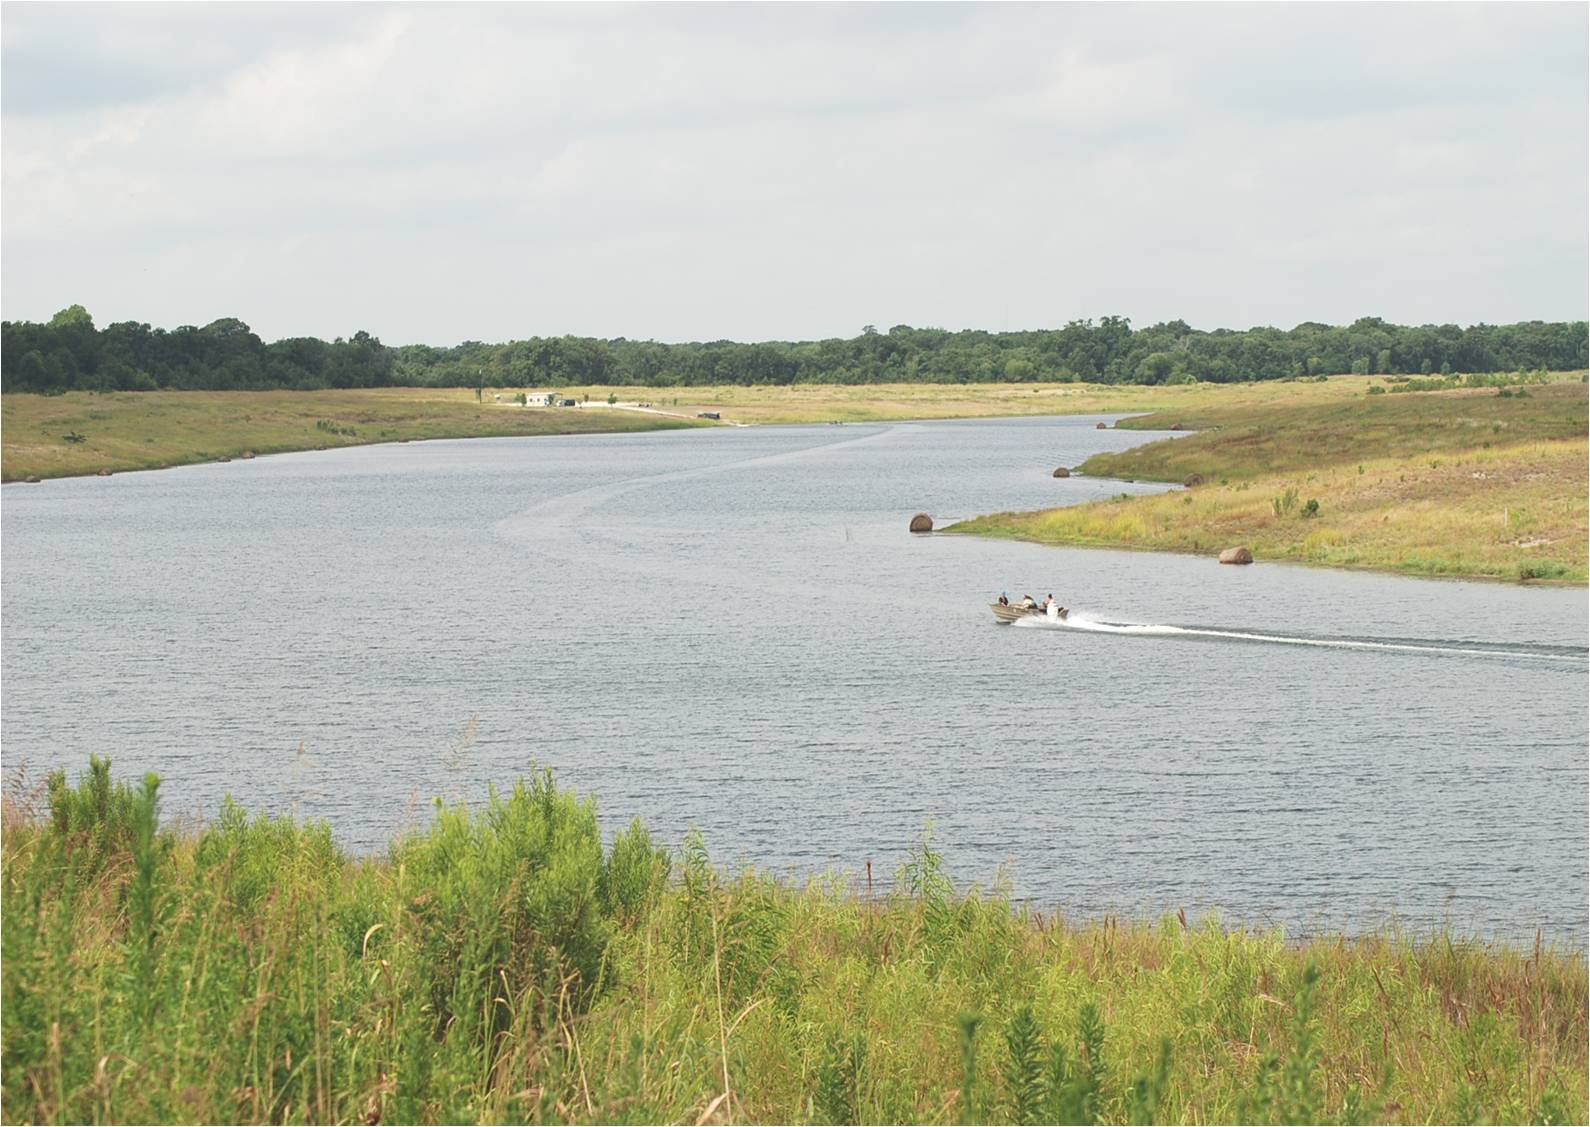 At approximately 112 surface-acres, the lake provides a rare opportunity for genetic research of largemouth bass through a partnership with Texas Parks and Wildlife Department. (Photo: Business Wire)